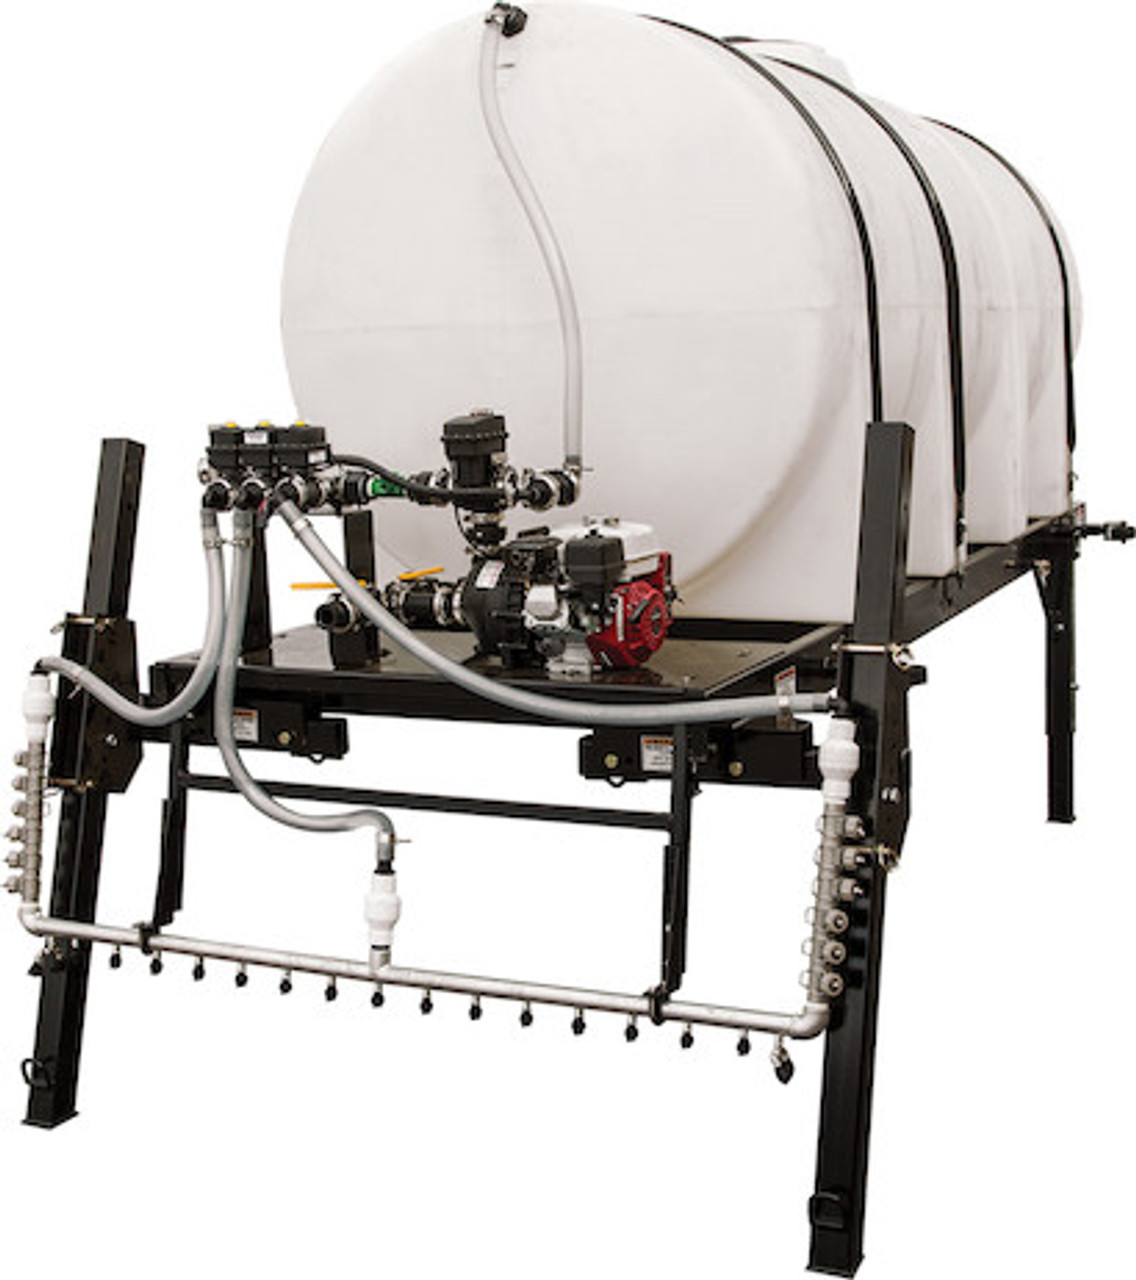 6191610 BUYERS SALT DOGG Gas-Powered ONE LANE 1065 GALLON Anti-Ice System with Manual Application Rate Control